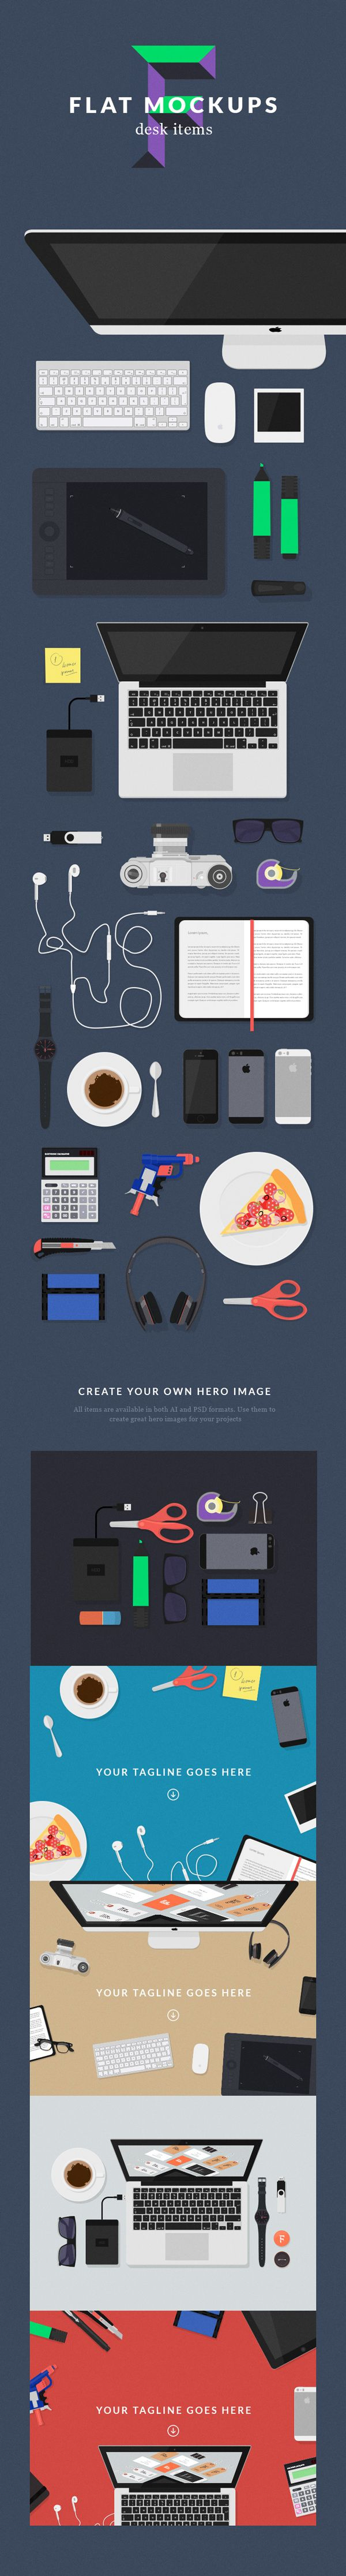 Flat MockUps – Desk Items | GraphicBurger